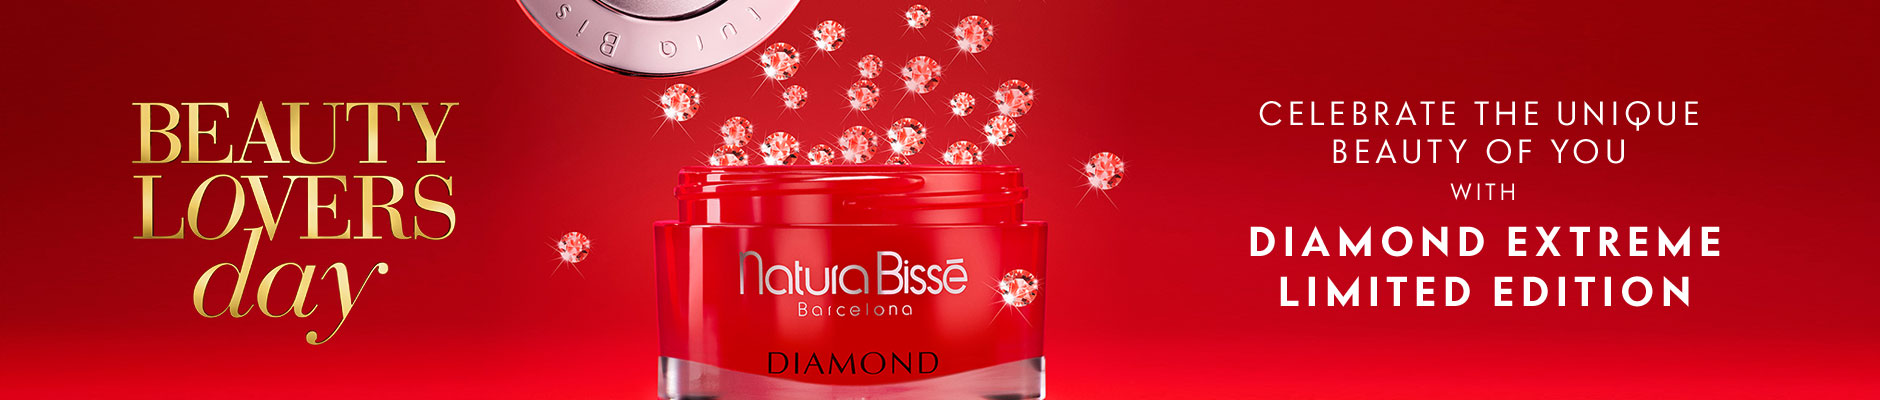 Beauty Lovers day - Celebrate the unique beauty of you with diamond extreme limited edition